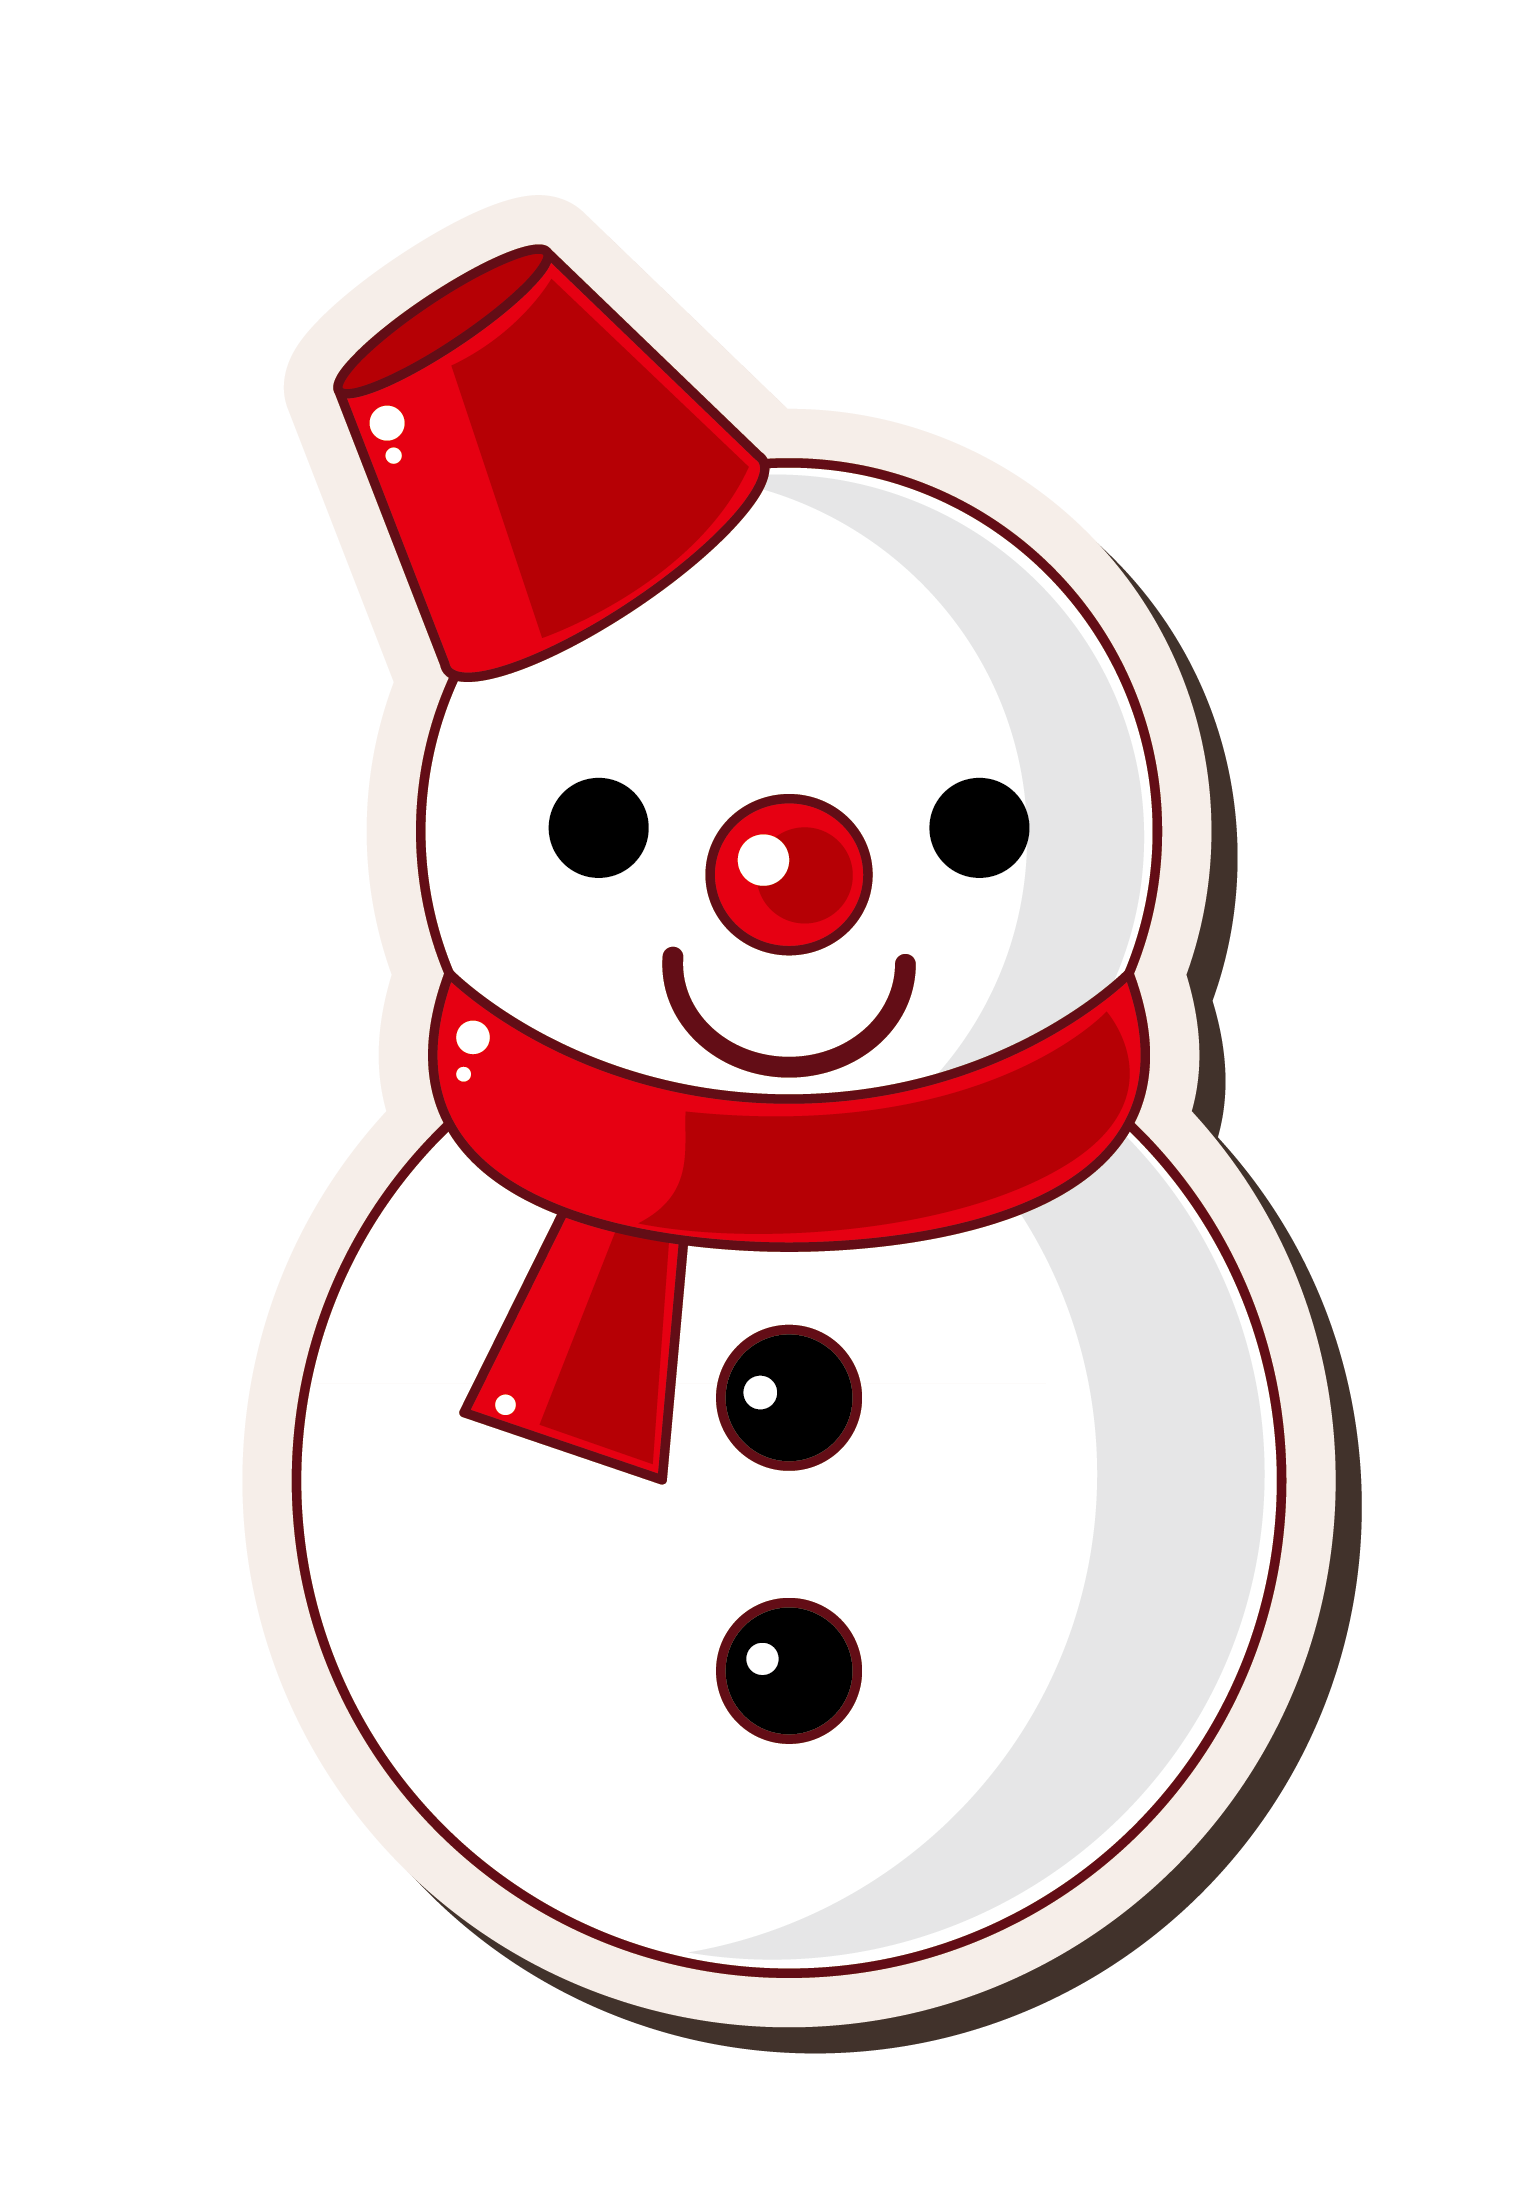 Cartoon Snowman Drawing at GetDrawings.com | Free for personal use ...